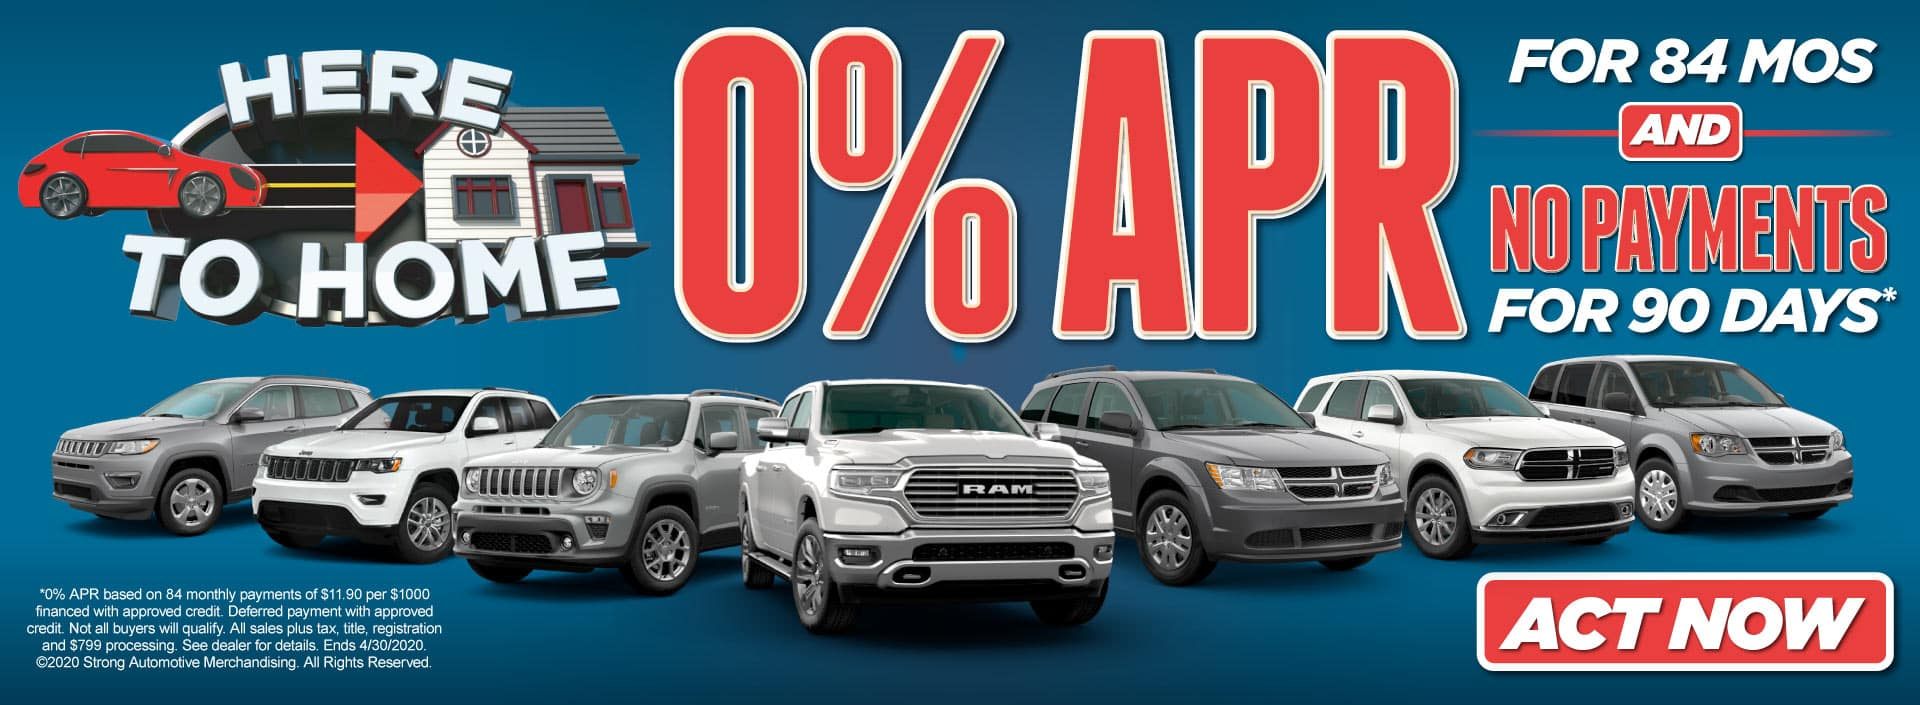 0% APR for 84 months and no payments for 90 days. Act Now!